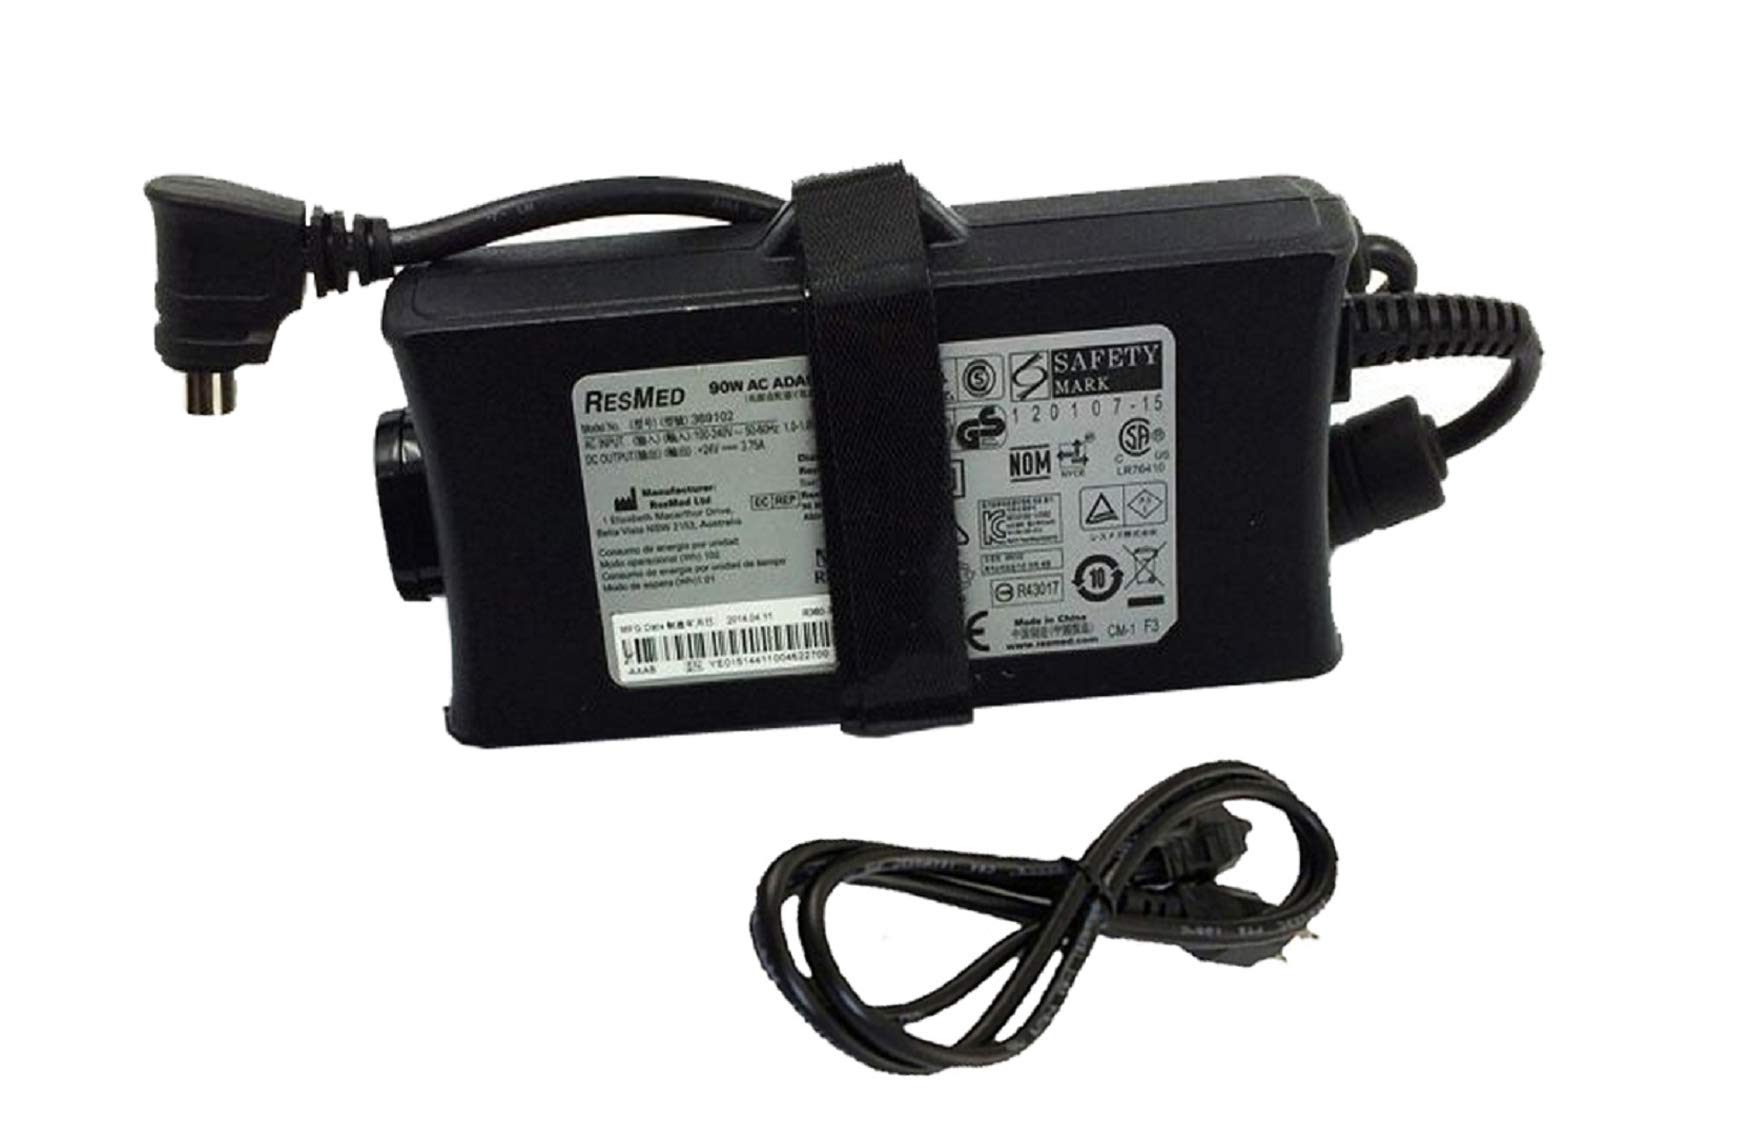 ResMed S9 Series 90W AC Adapter Power Supply 24V 3.75A